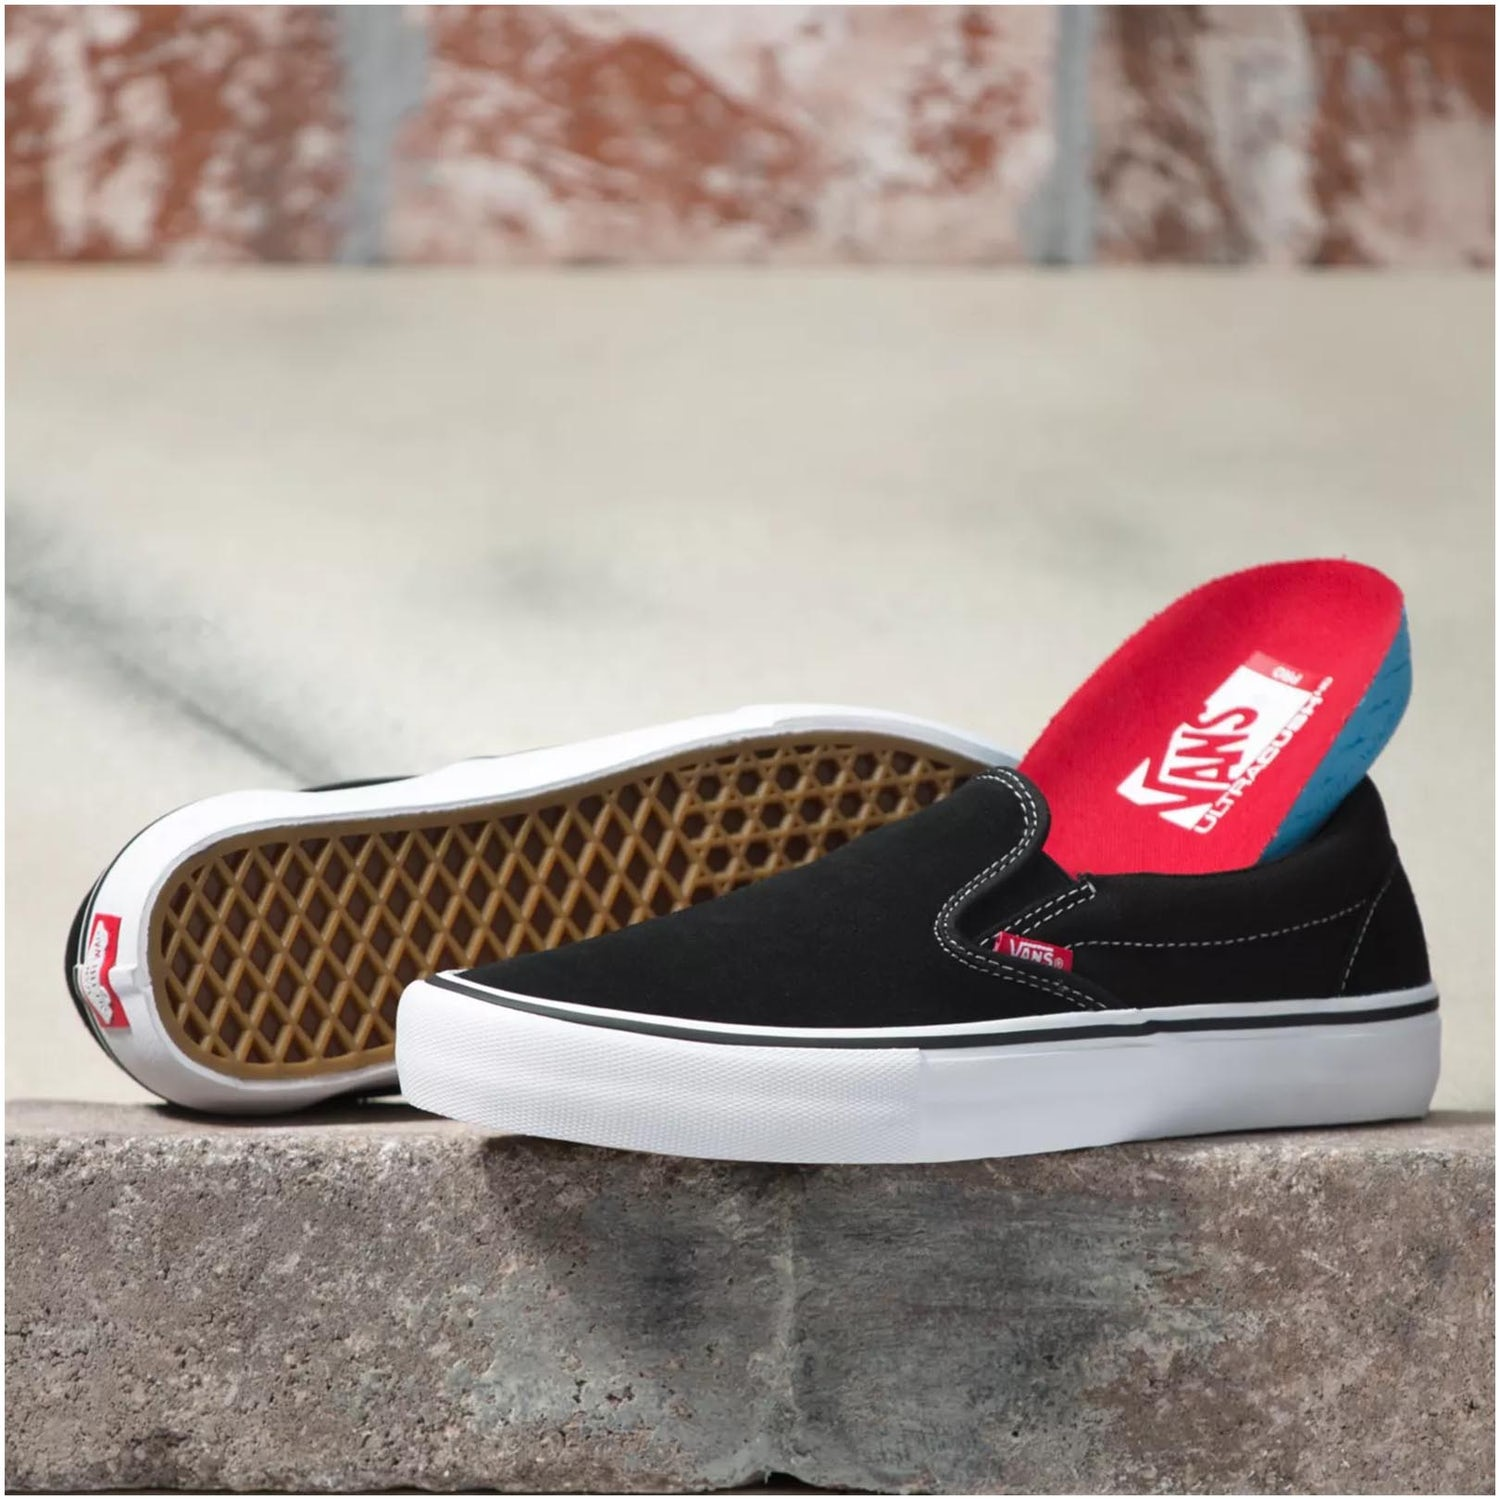 slipons  0002 Vans Slip On